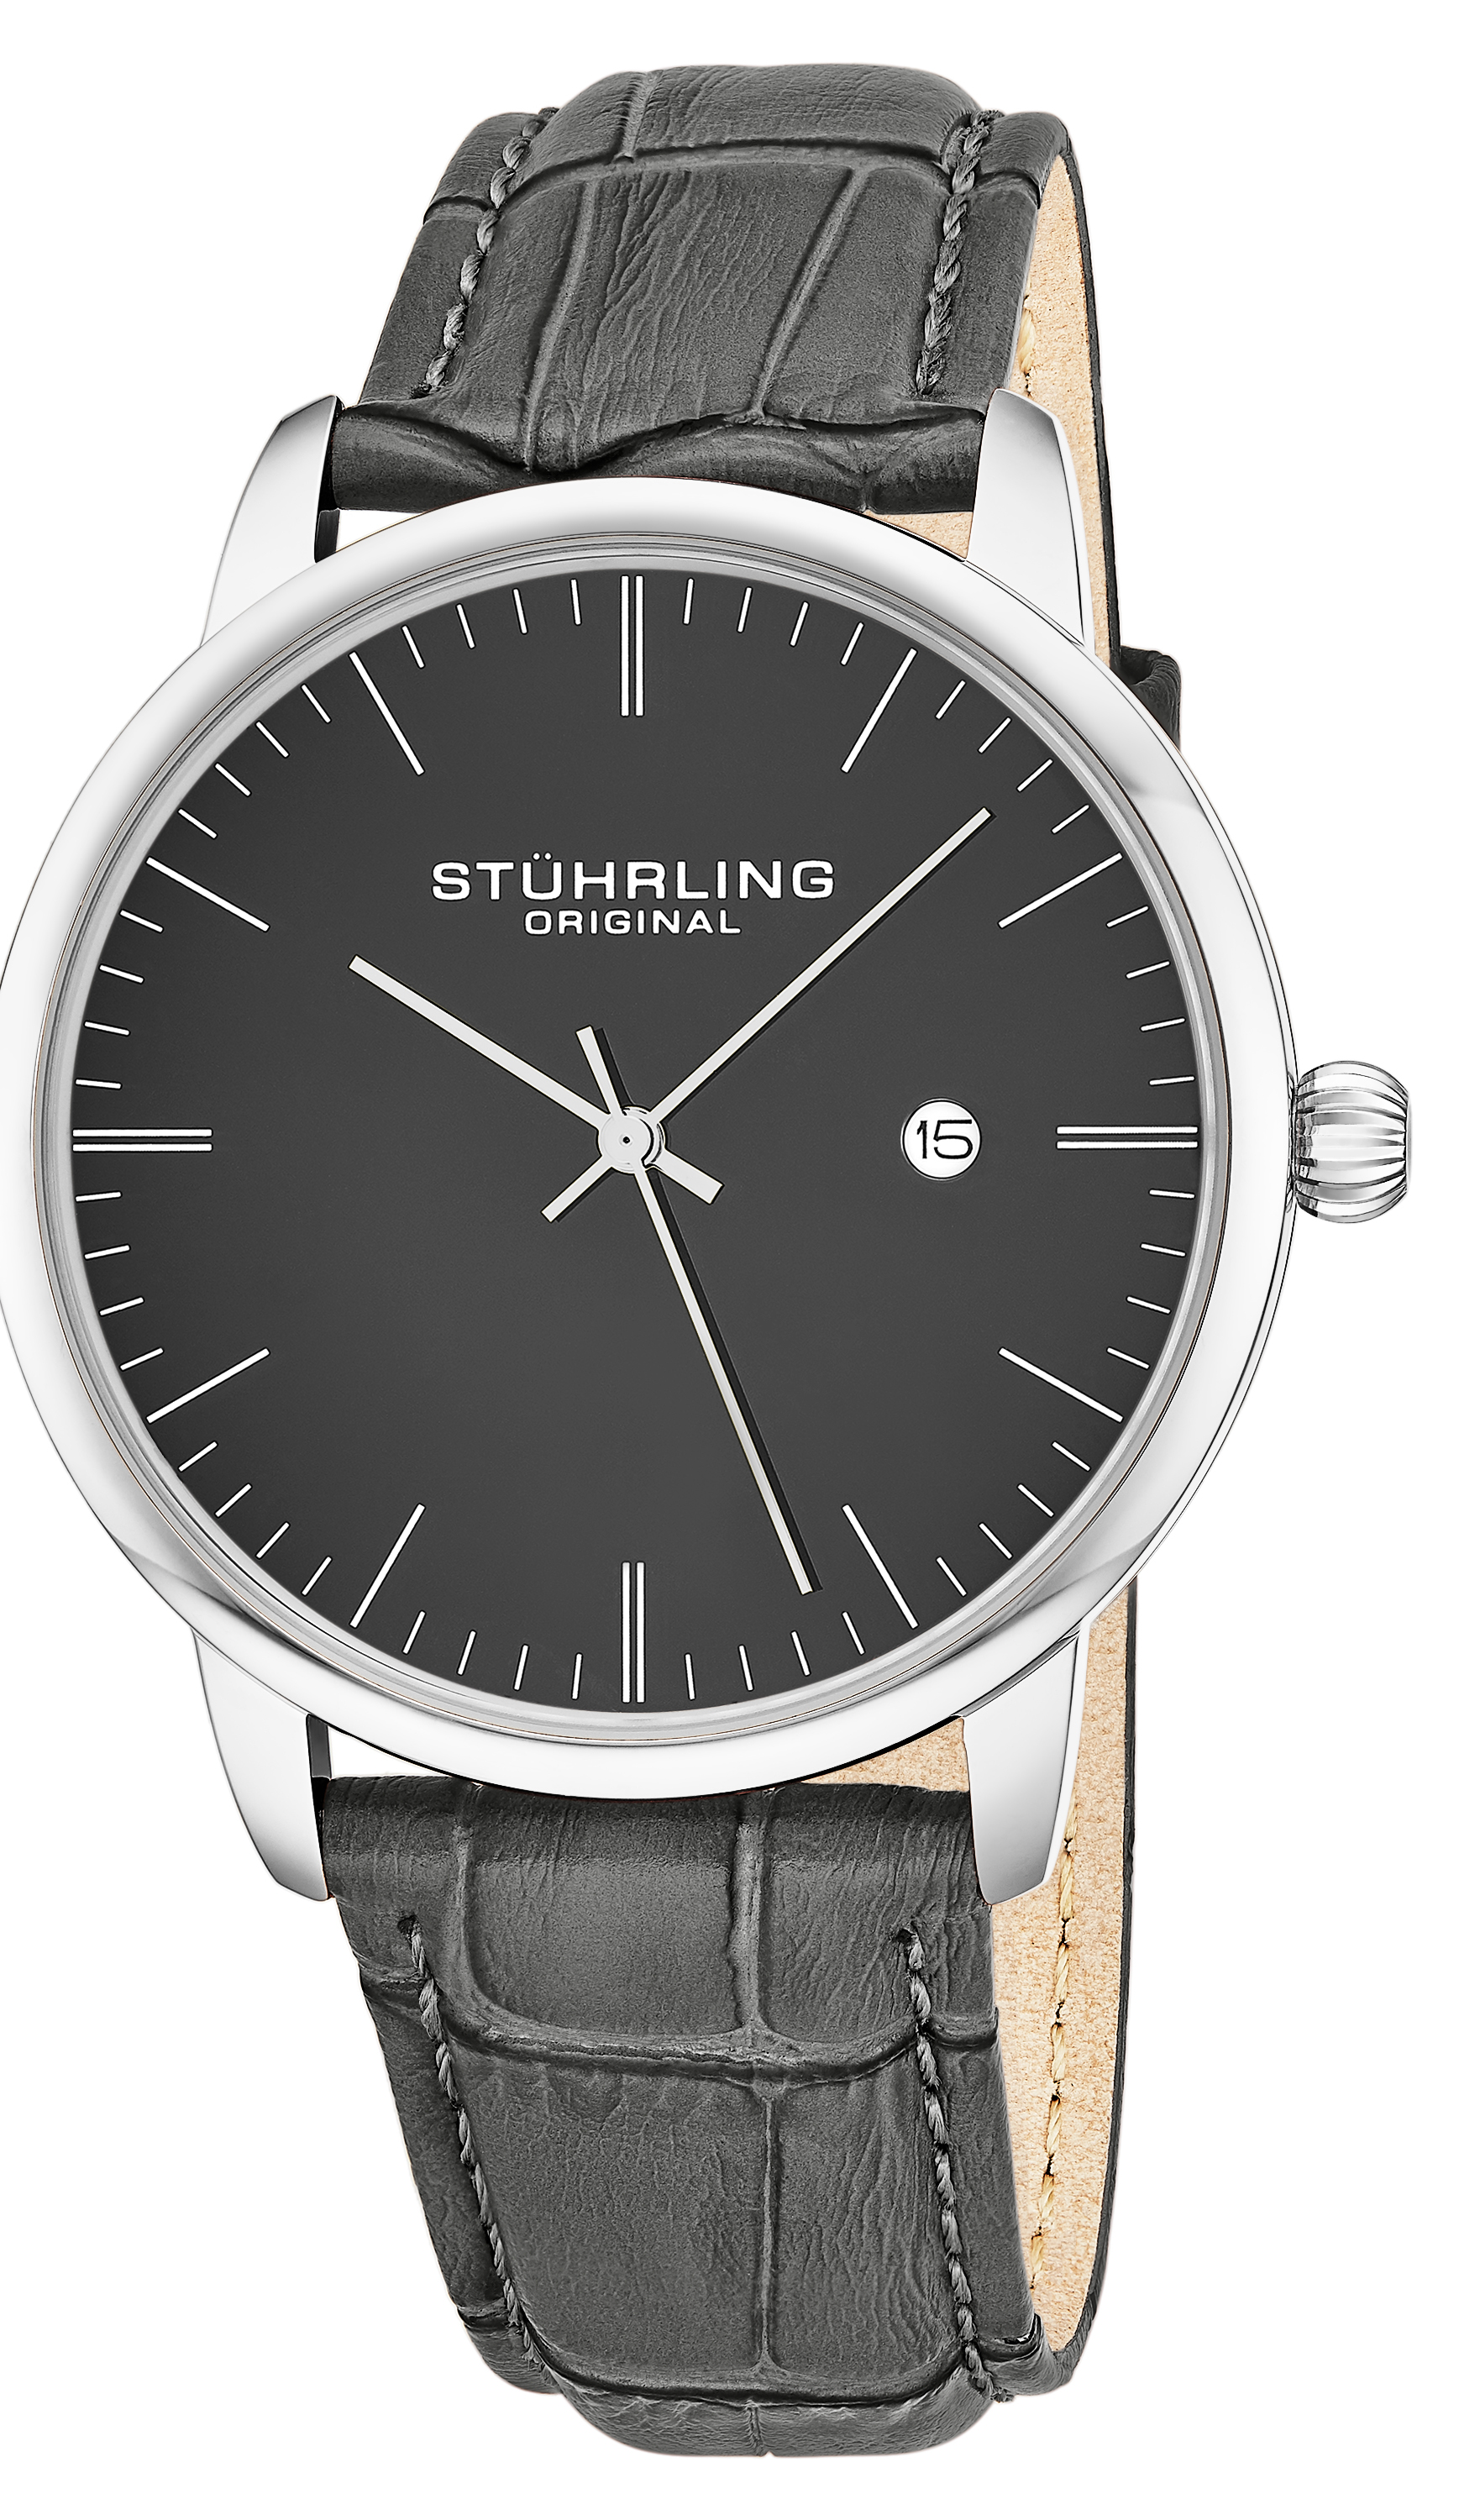 Stührling Original 99999 Herrklocka 3997.4 Blå/Stål Ø38 mm - Stührling Original